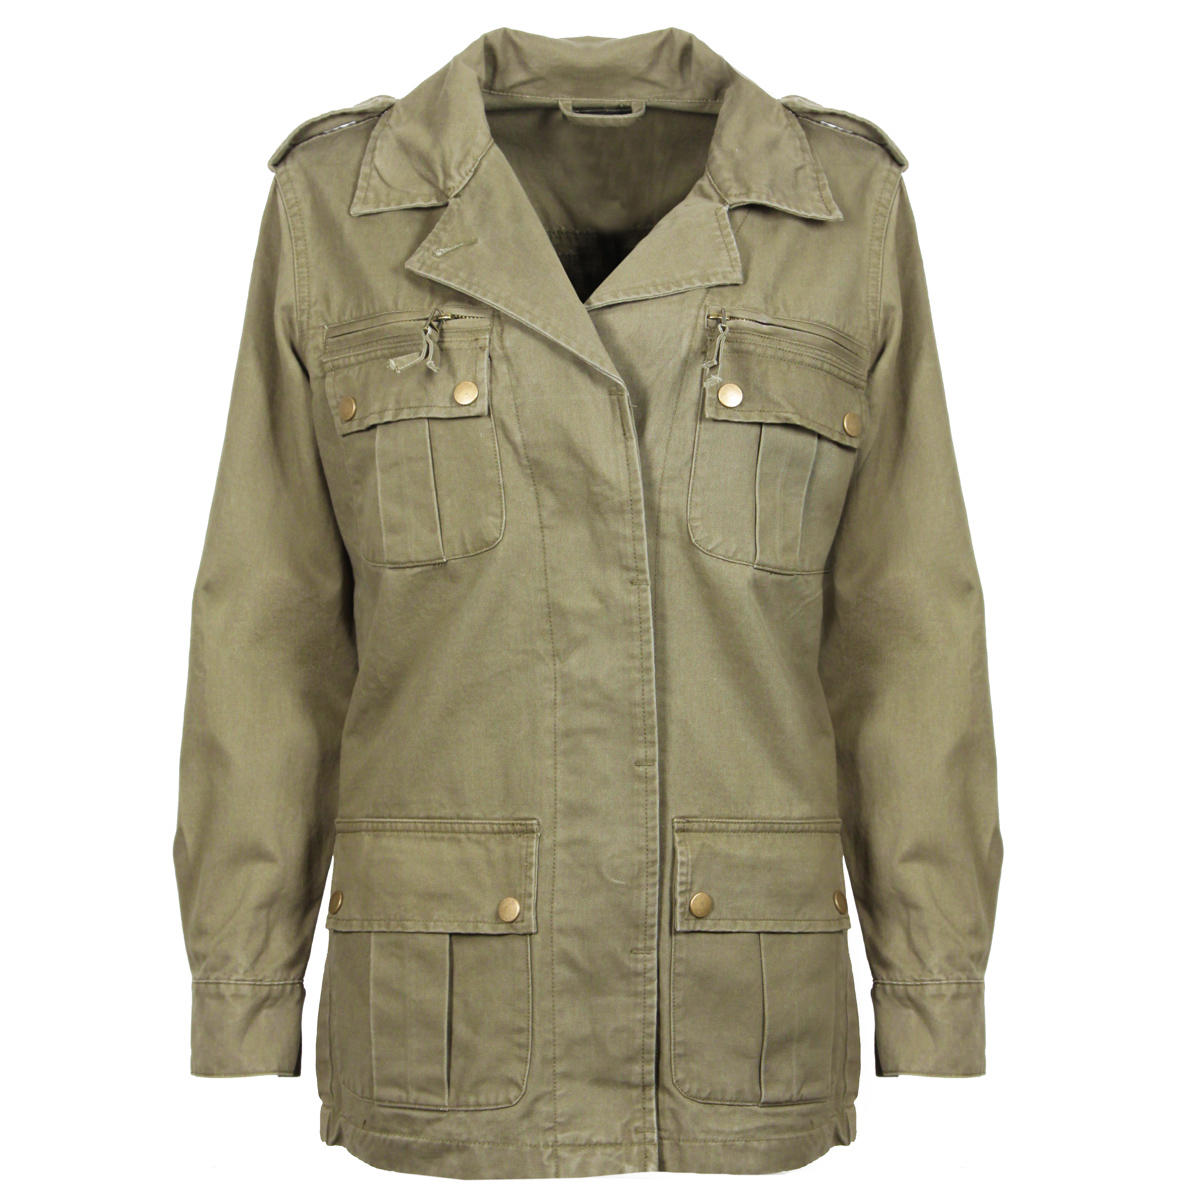 US NAVY SERVICE DRESS KHAKI (SDK) CPO UNIFORM. Select your Rank Select your Branch of US NAVY MALE SERVICE DRESS KHAKI SDK JACKET. Chest Size. Length. Regular. Price $ Quantity - + ADD TO CART. Shirt. US NAVY OFFICER KHAKI SHIRT. Size. Fabric. 75/